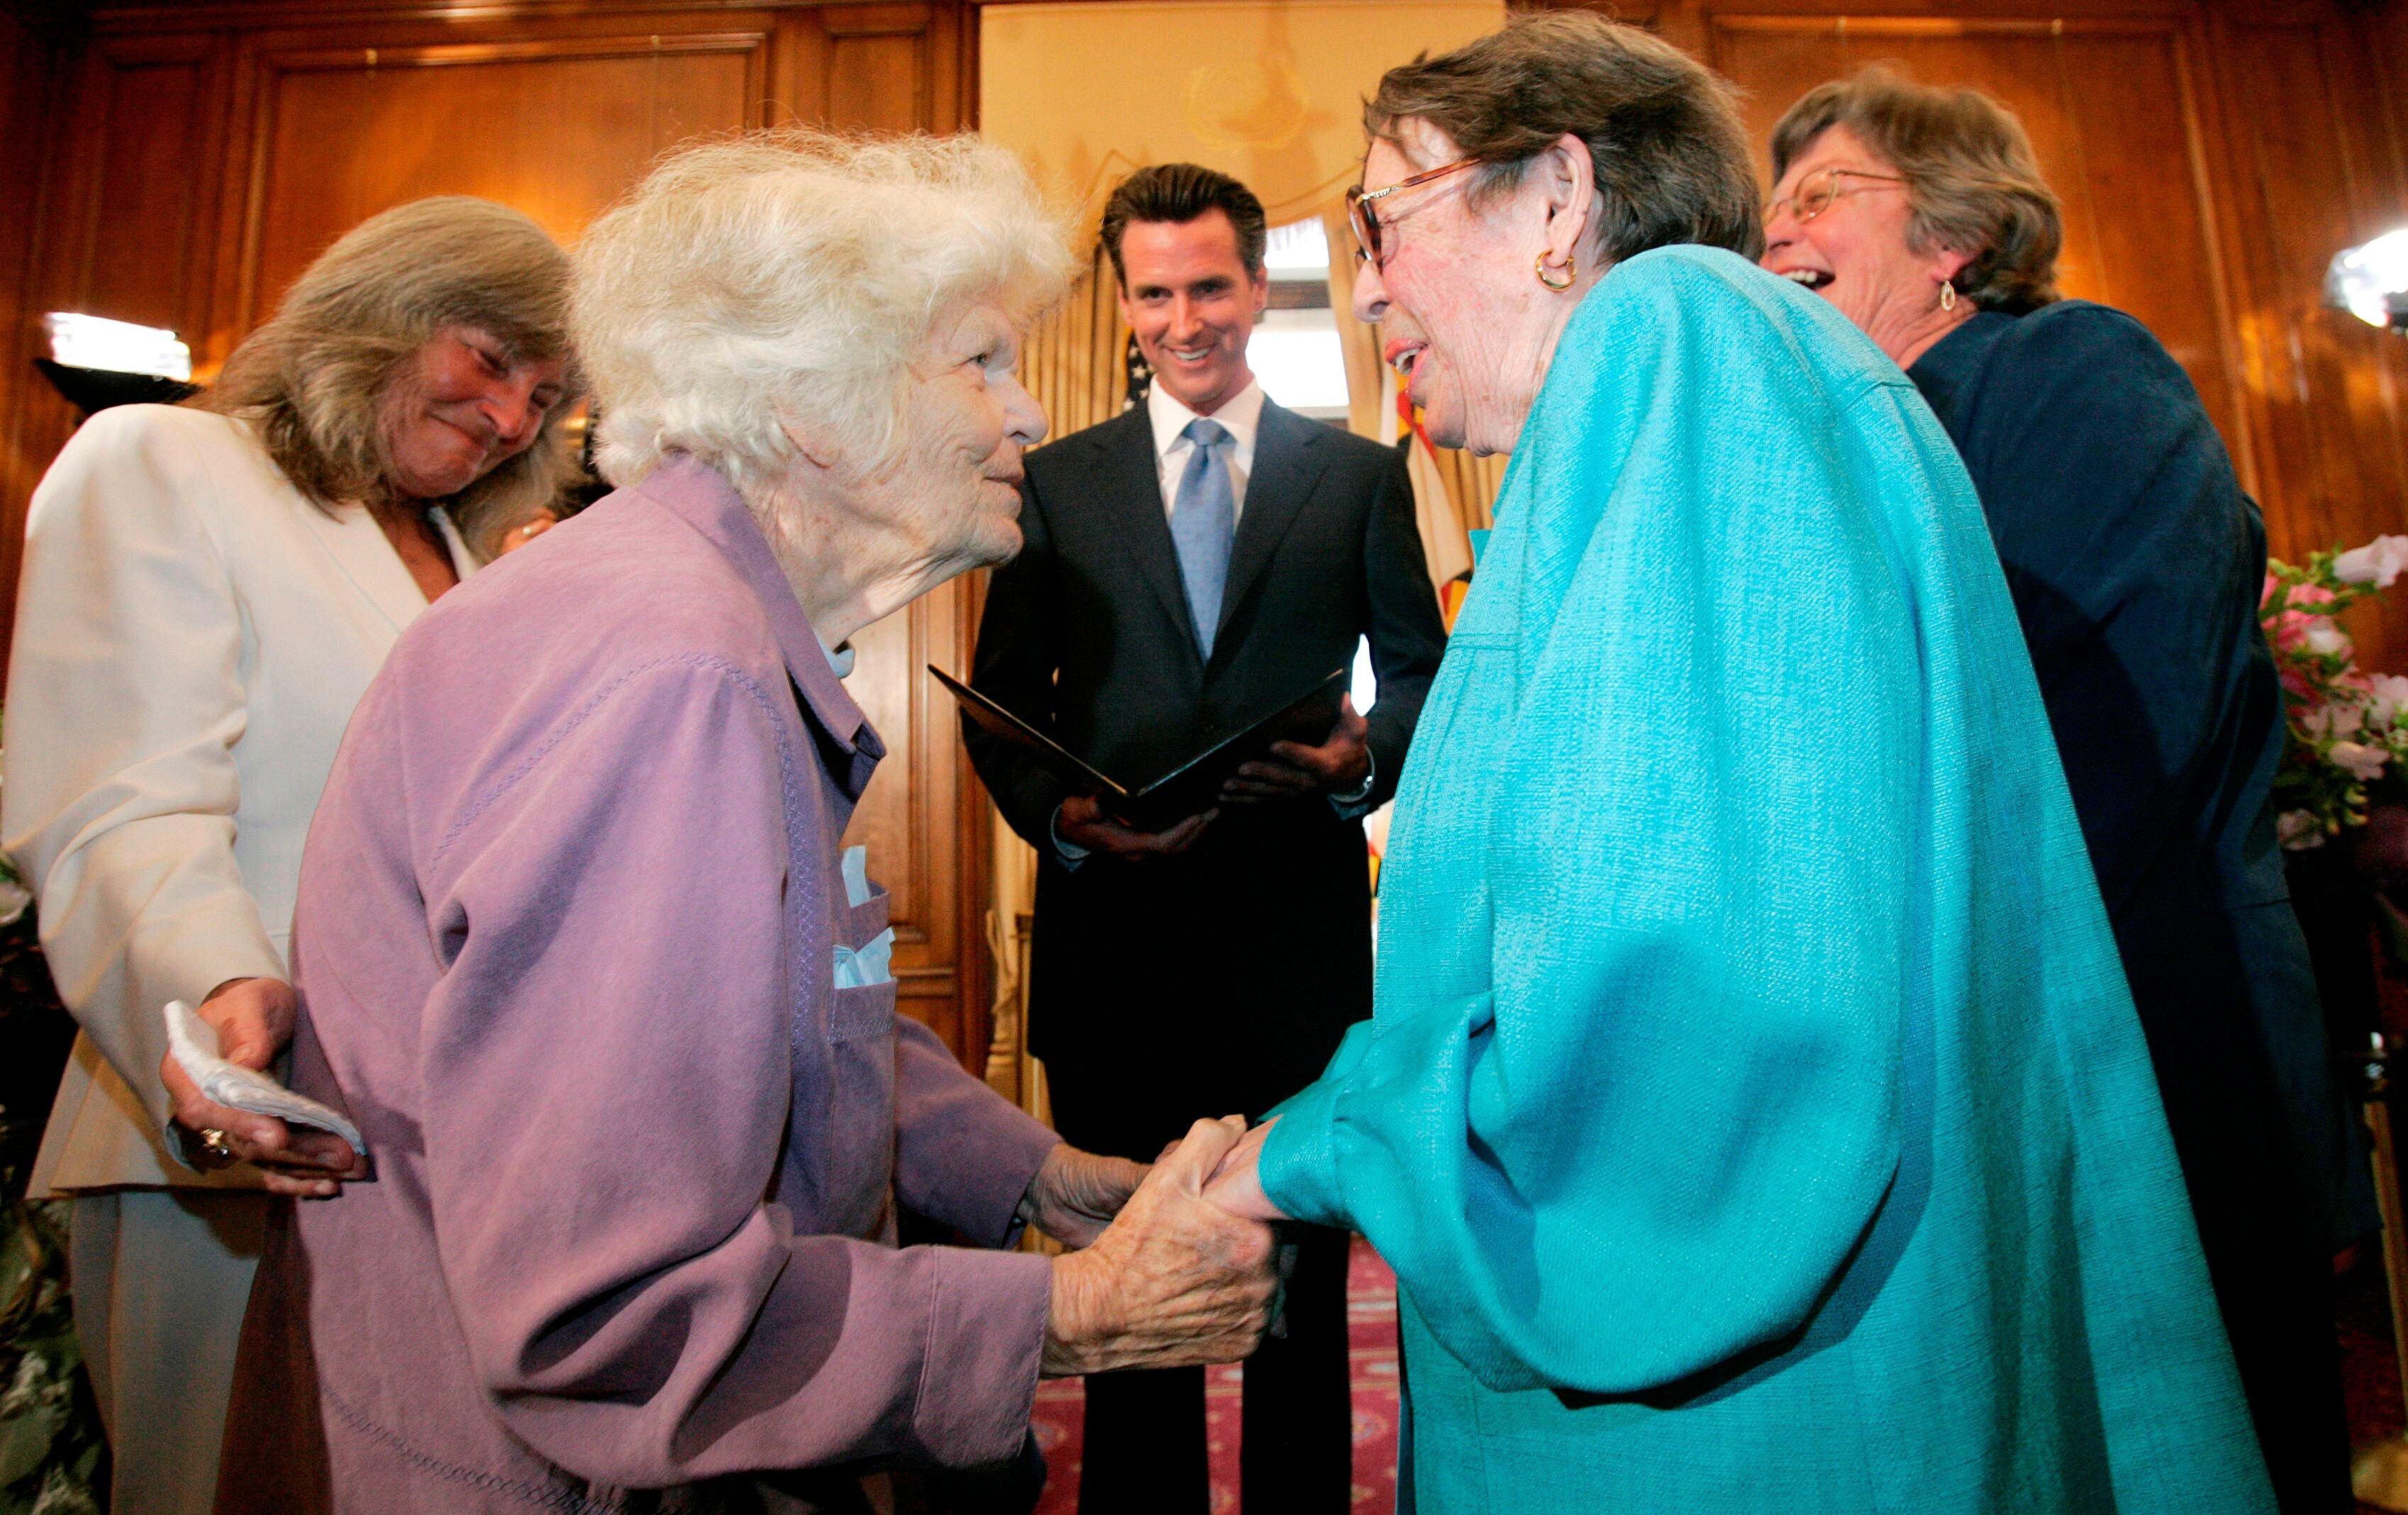 Del Martin, left, and Phyllis Lyon were married by San Francisco Mayor Gavin Newsom at City Hall in San Francisco in 2008.&nb